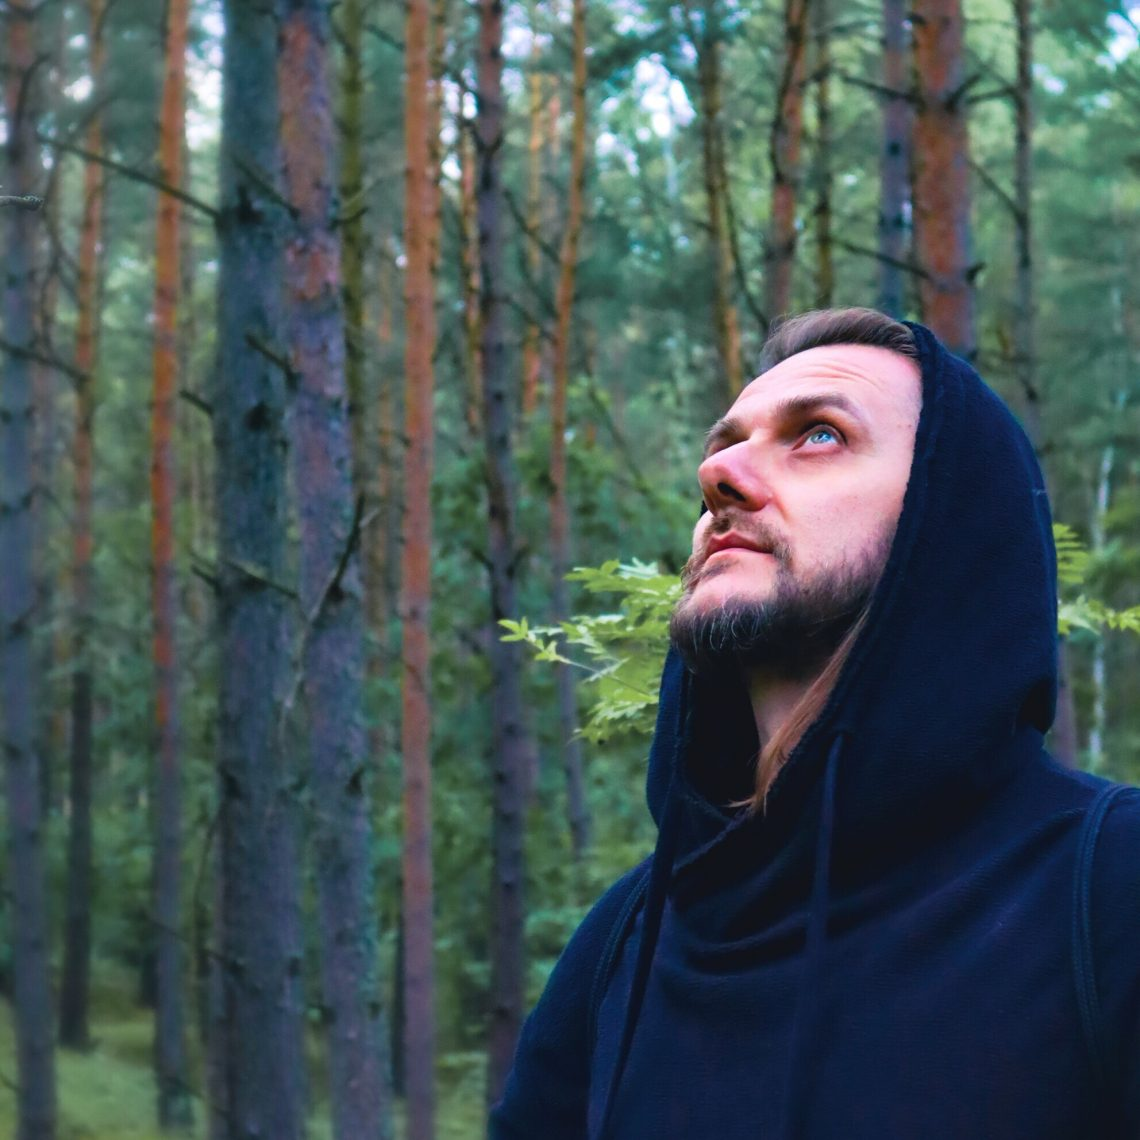 Mariusz Duda checks in with an update on the new Lunatic Soul album